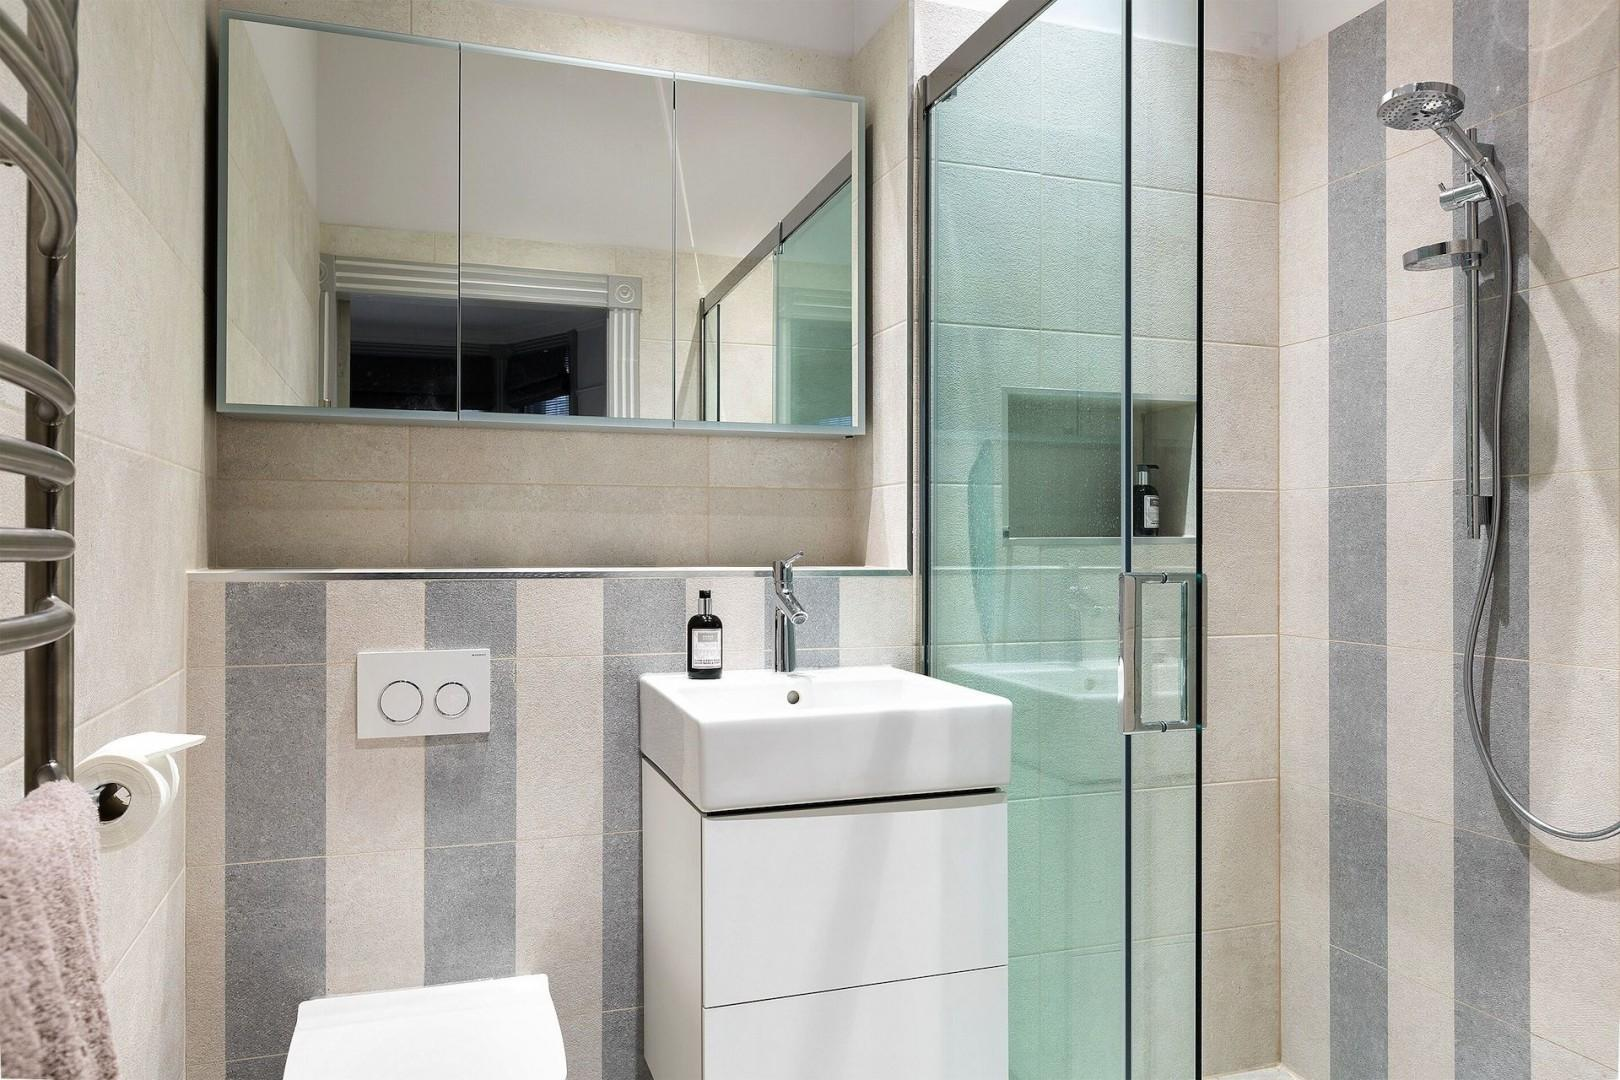 Bedroom 1 has an en suite bathroom equipped with shower, sink and toilet